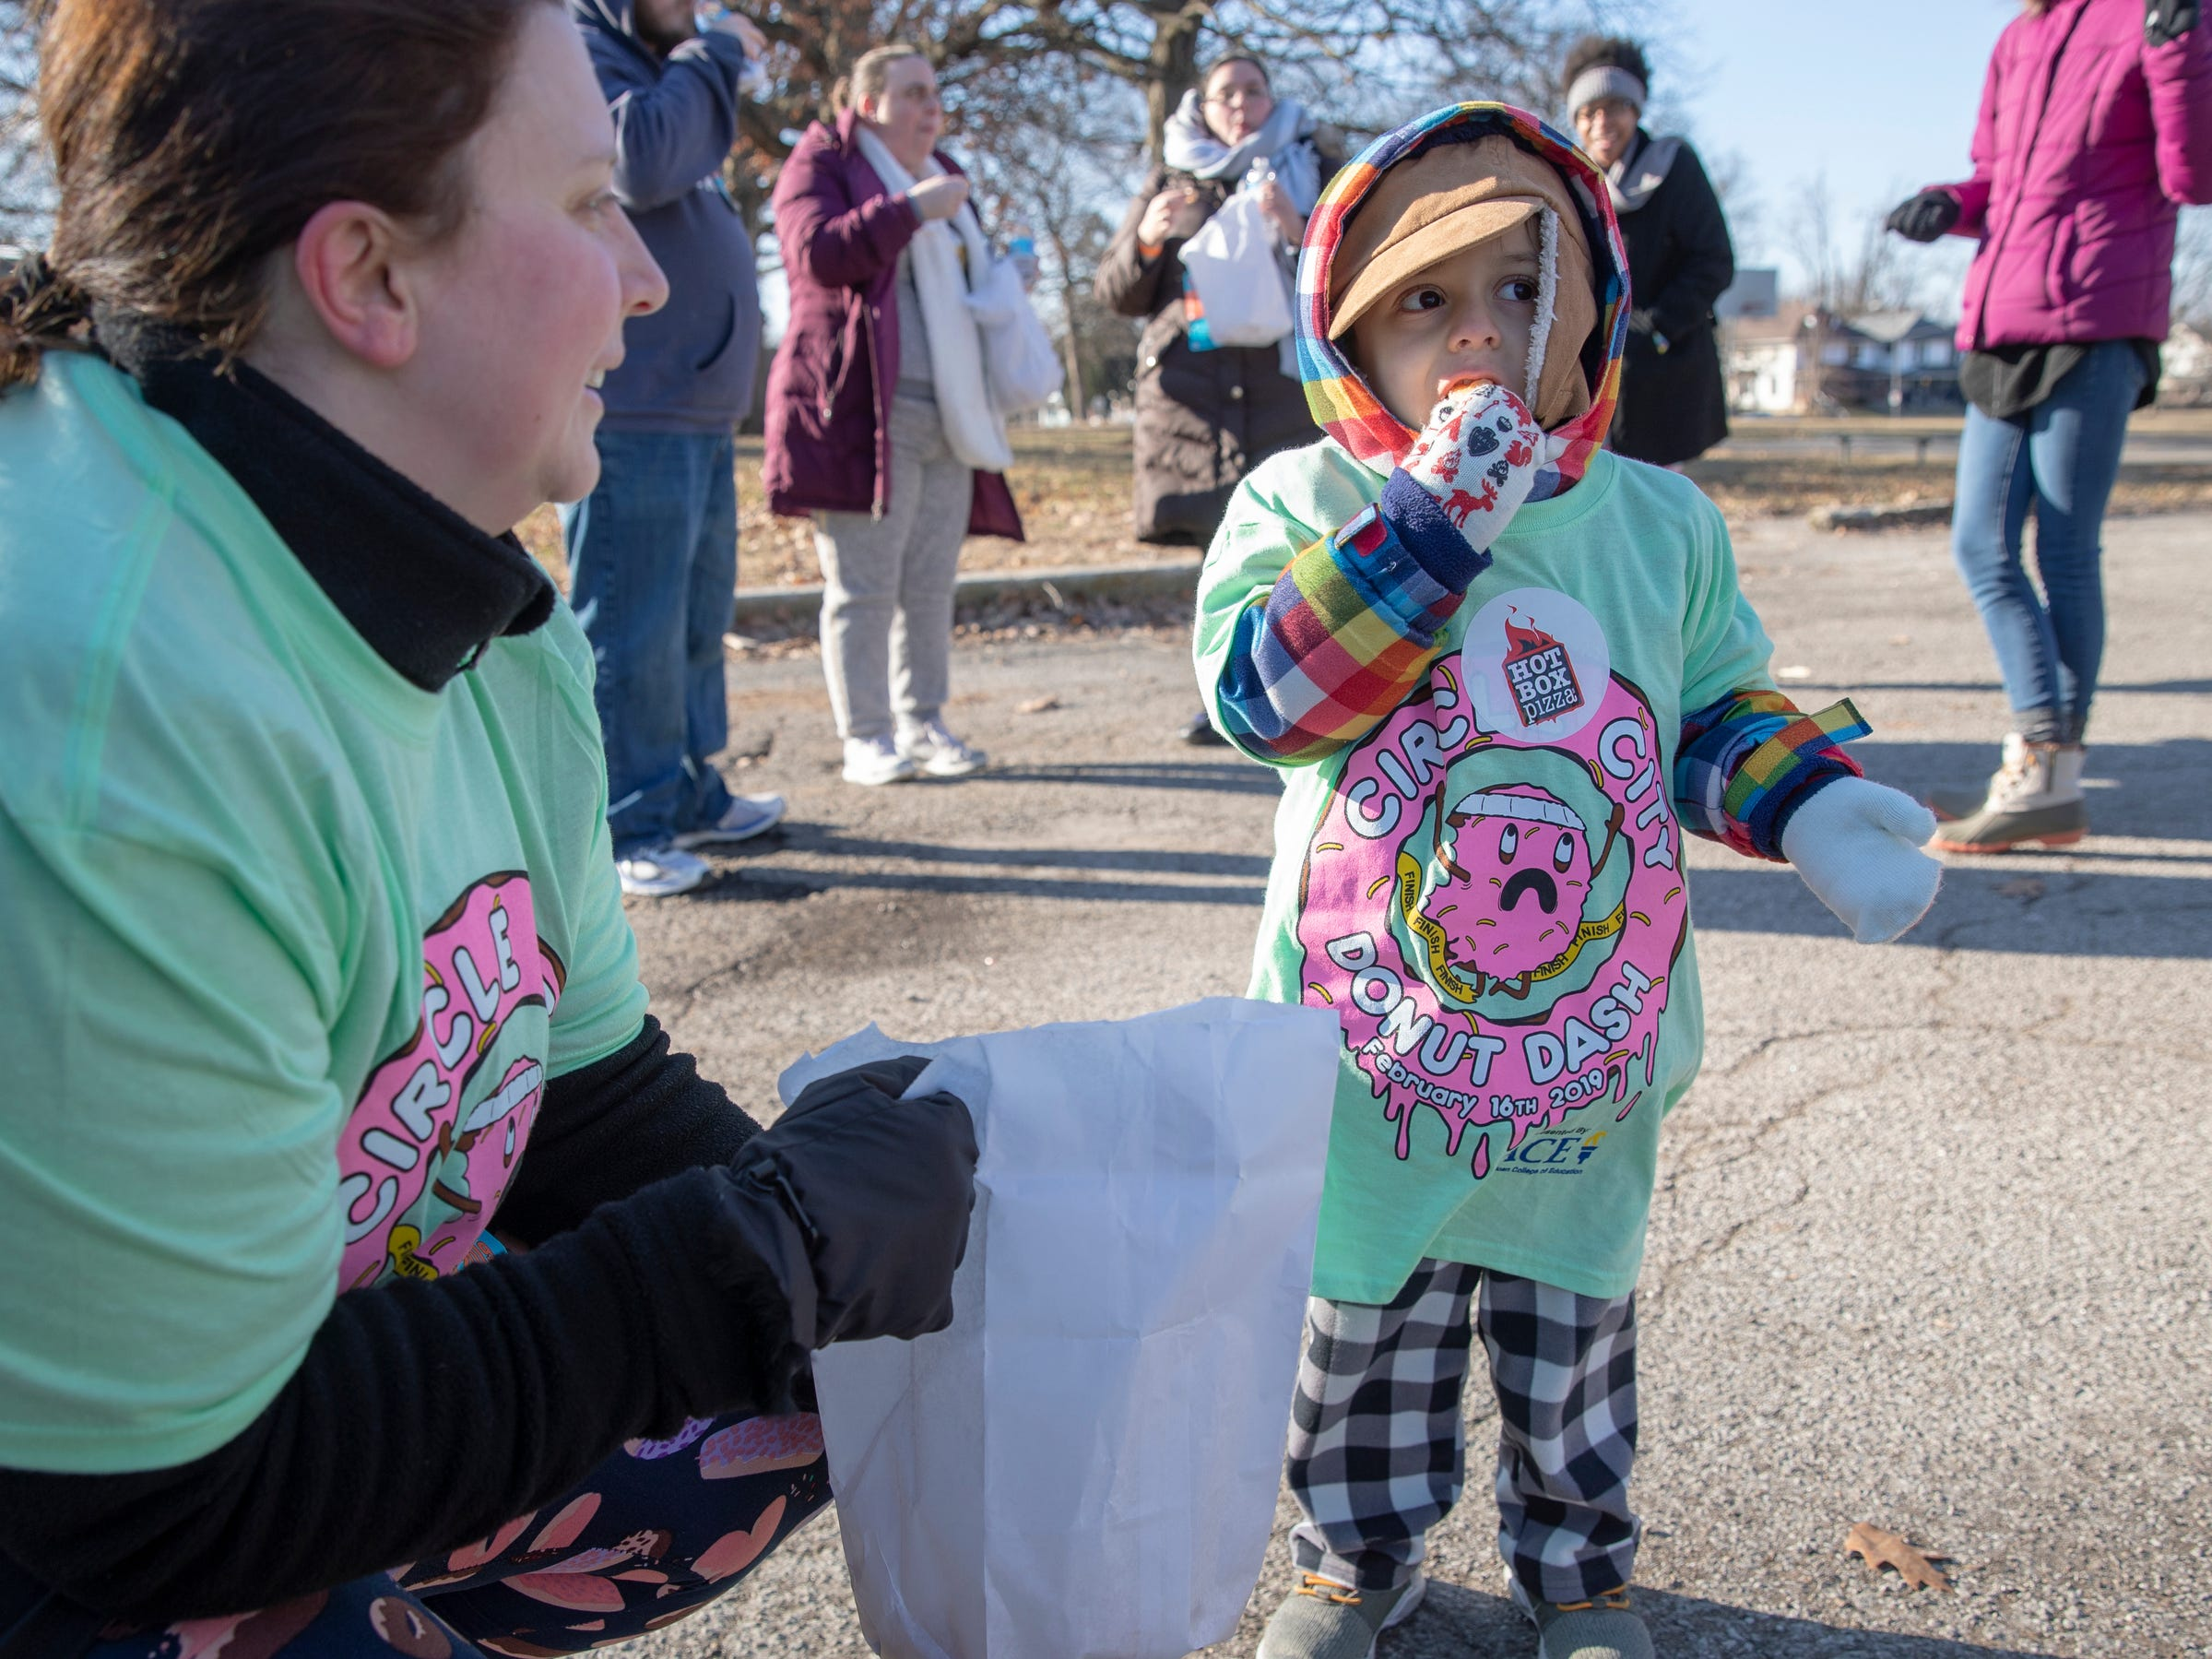 Vian Khatadia, 3, Brownsburg, has a doughnut hole with his mother Valerie Khatadia, during the Circle City Donut Dash 5k, a five kilometer race that benefits Teachers' Treasures, Indianapolis, Saturday, Feb. 16, 2019. The race invites willing runners to eat a dozen doughnut holes at the halfway point in the event that helps provide school supplies for area school kids.